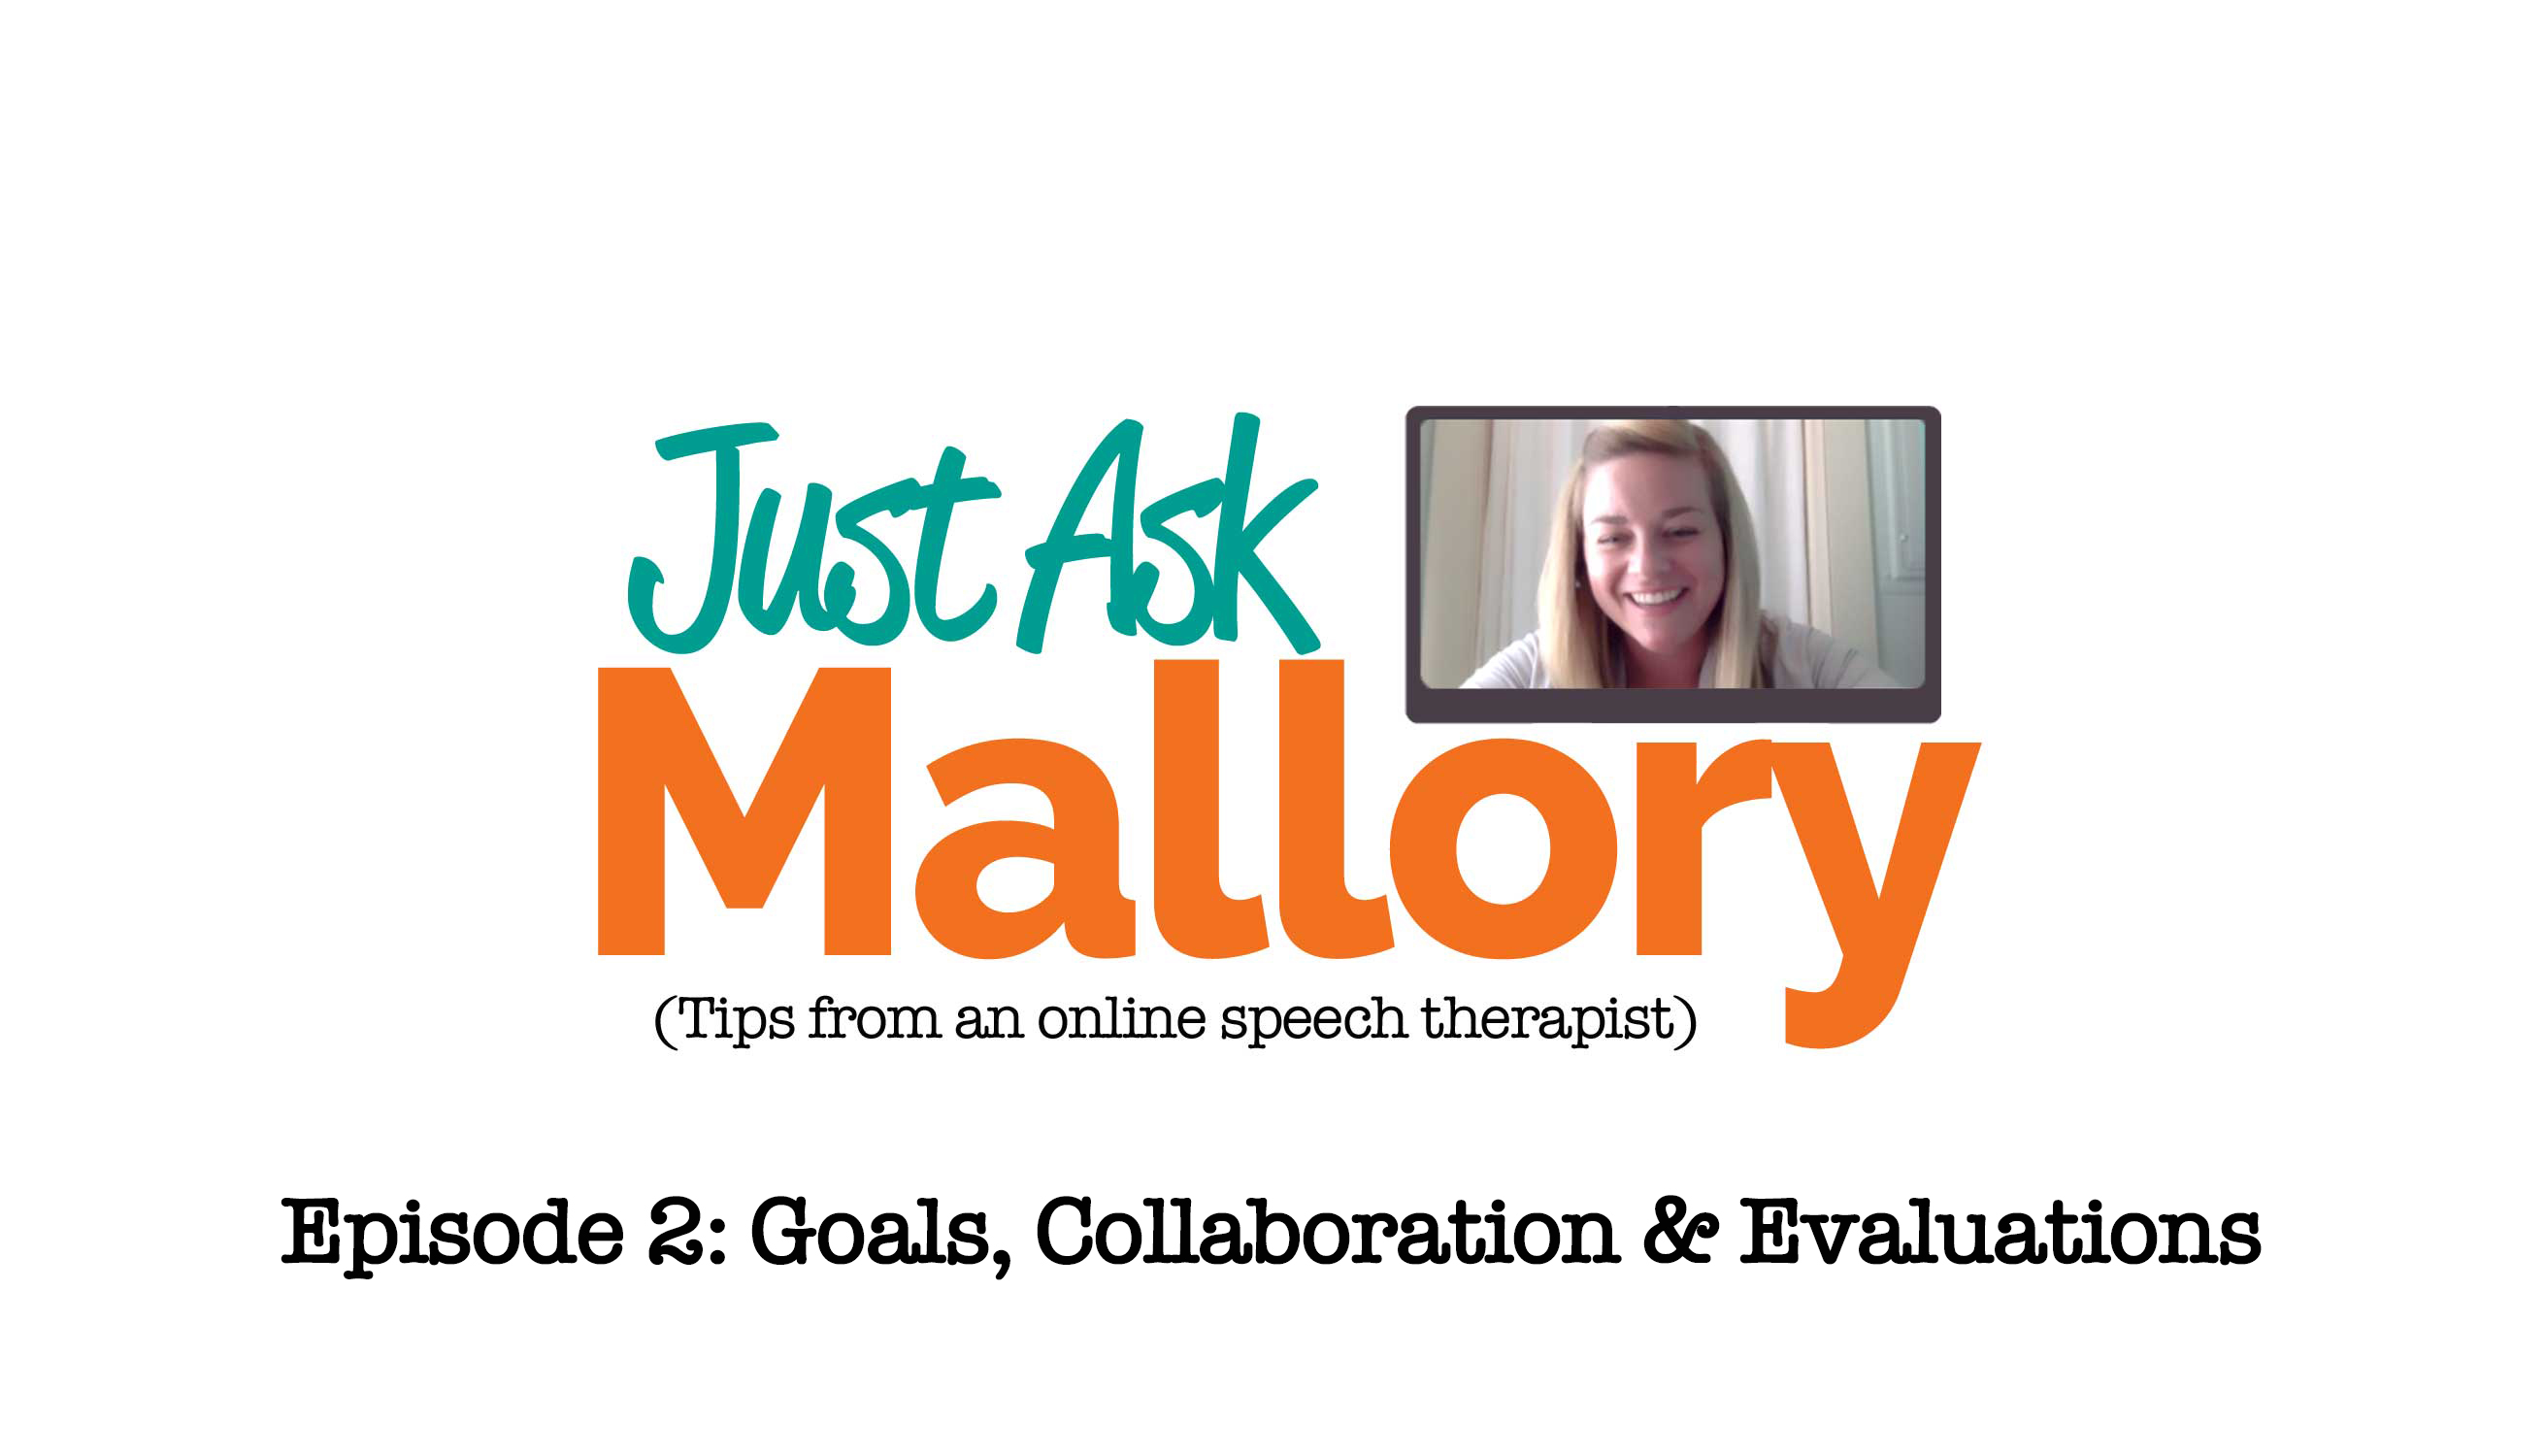 Just Ask Mallory - episode 2